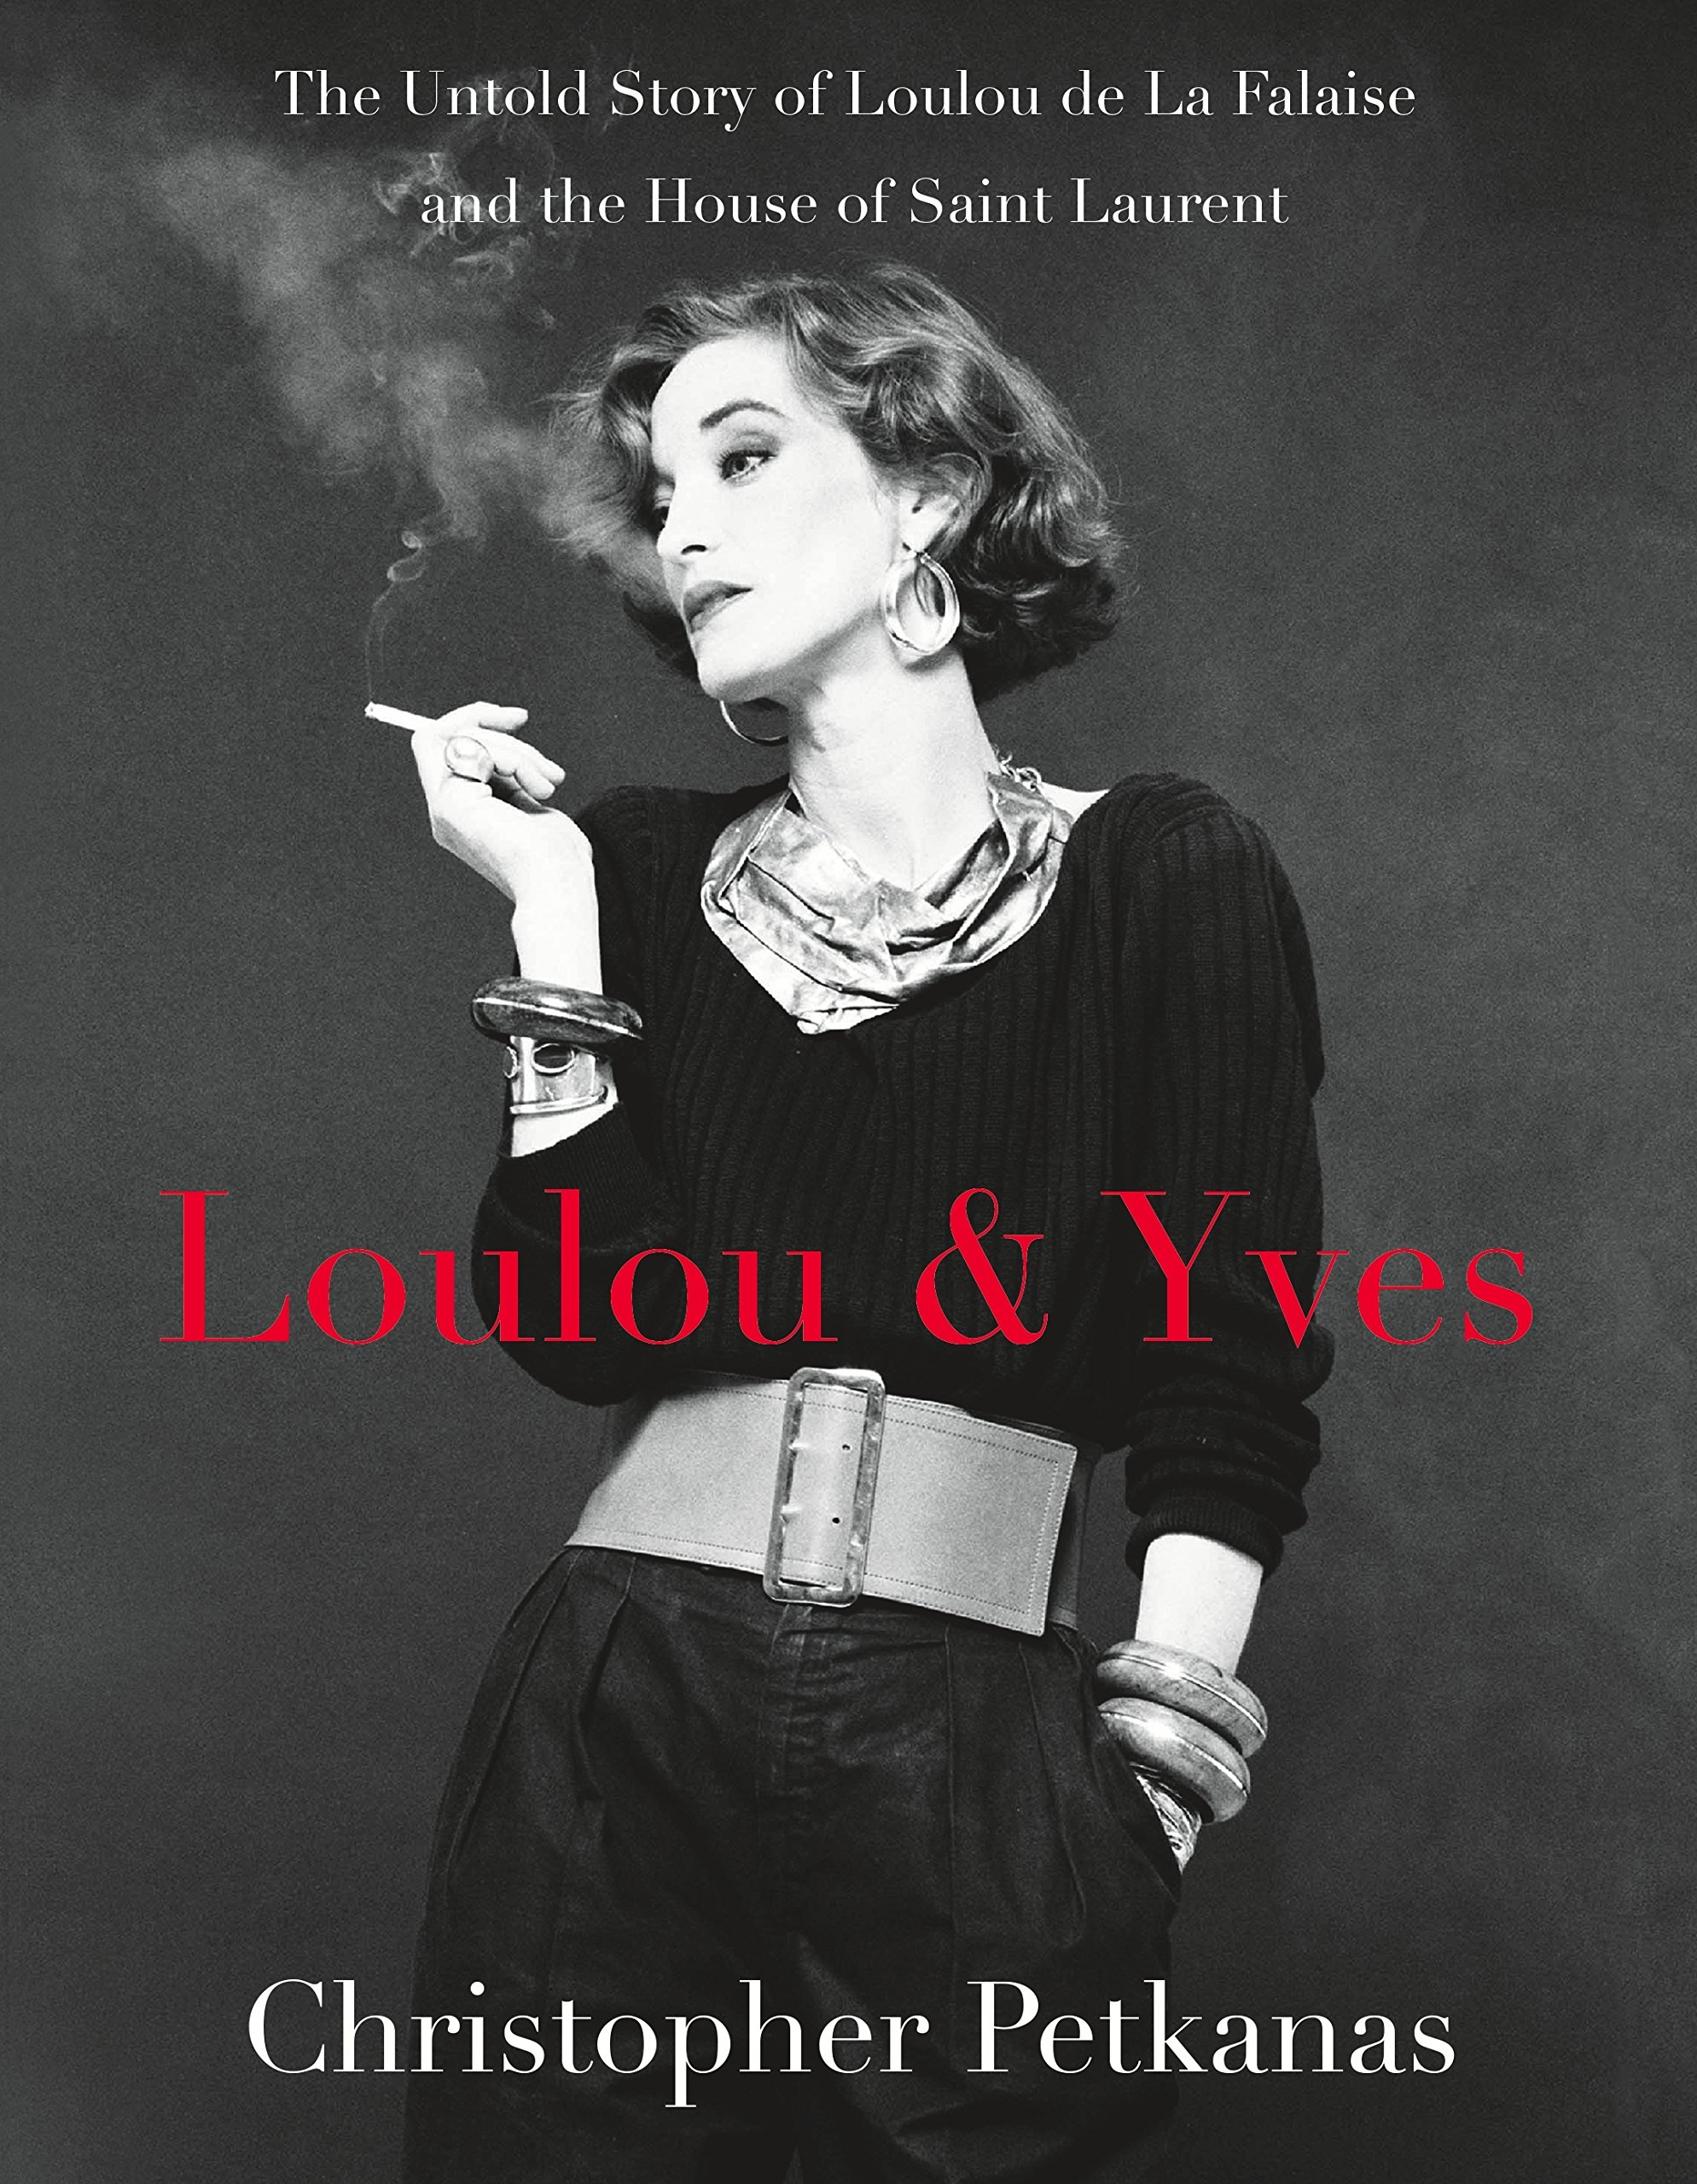 Loulou & Yves: The Untold Story of Loulou de La Falaise and the House of Saint Laurent